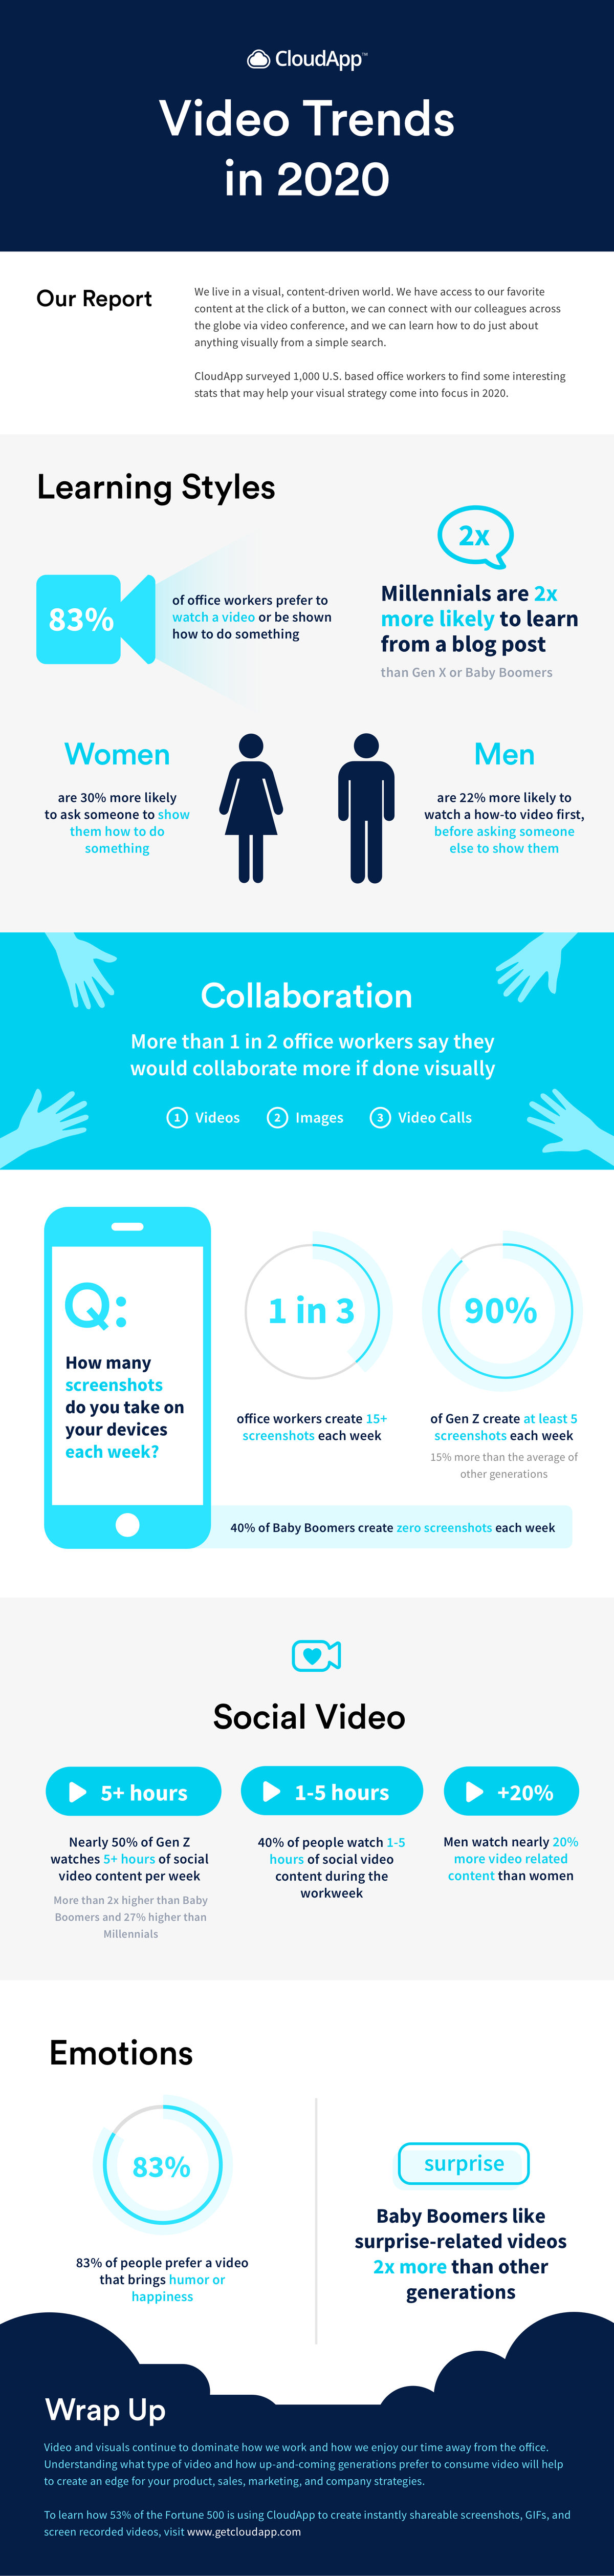 Video Trends in 2020 Infographic